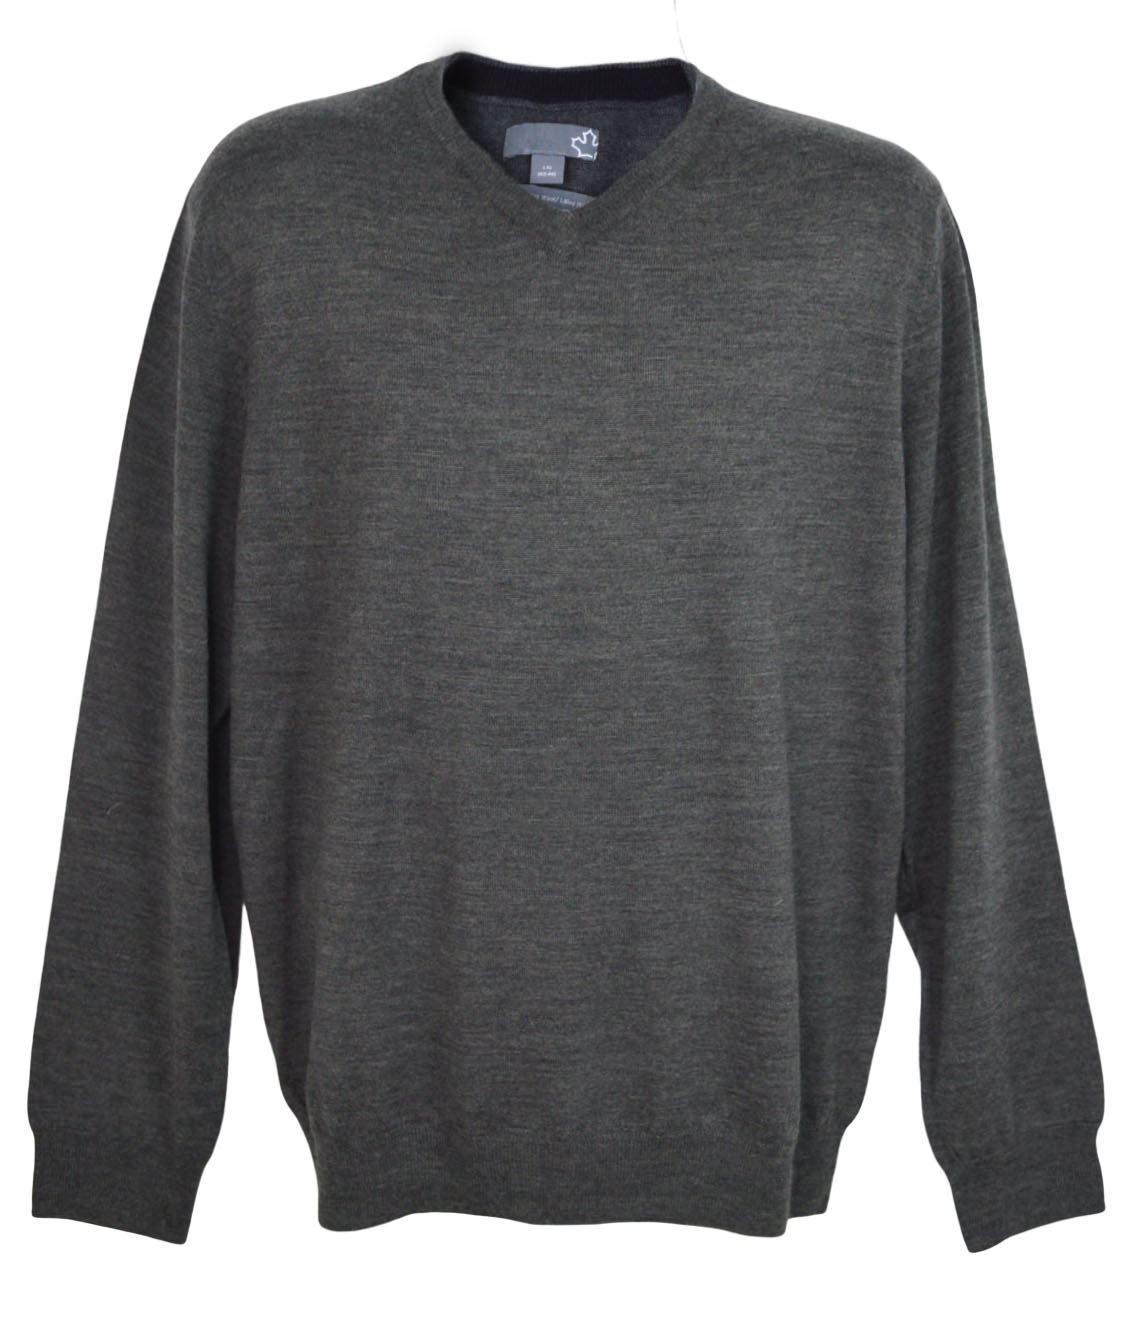 SEARS-Mens-Pure-Merino-Wool-V-Neck-Jumper-Pullover-Super-Quality thumbnail 14